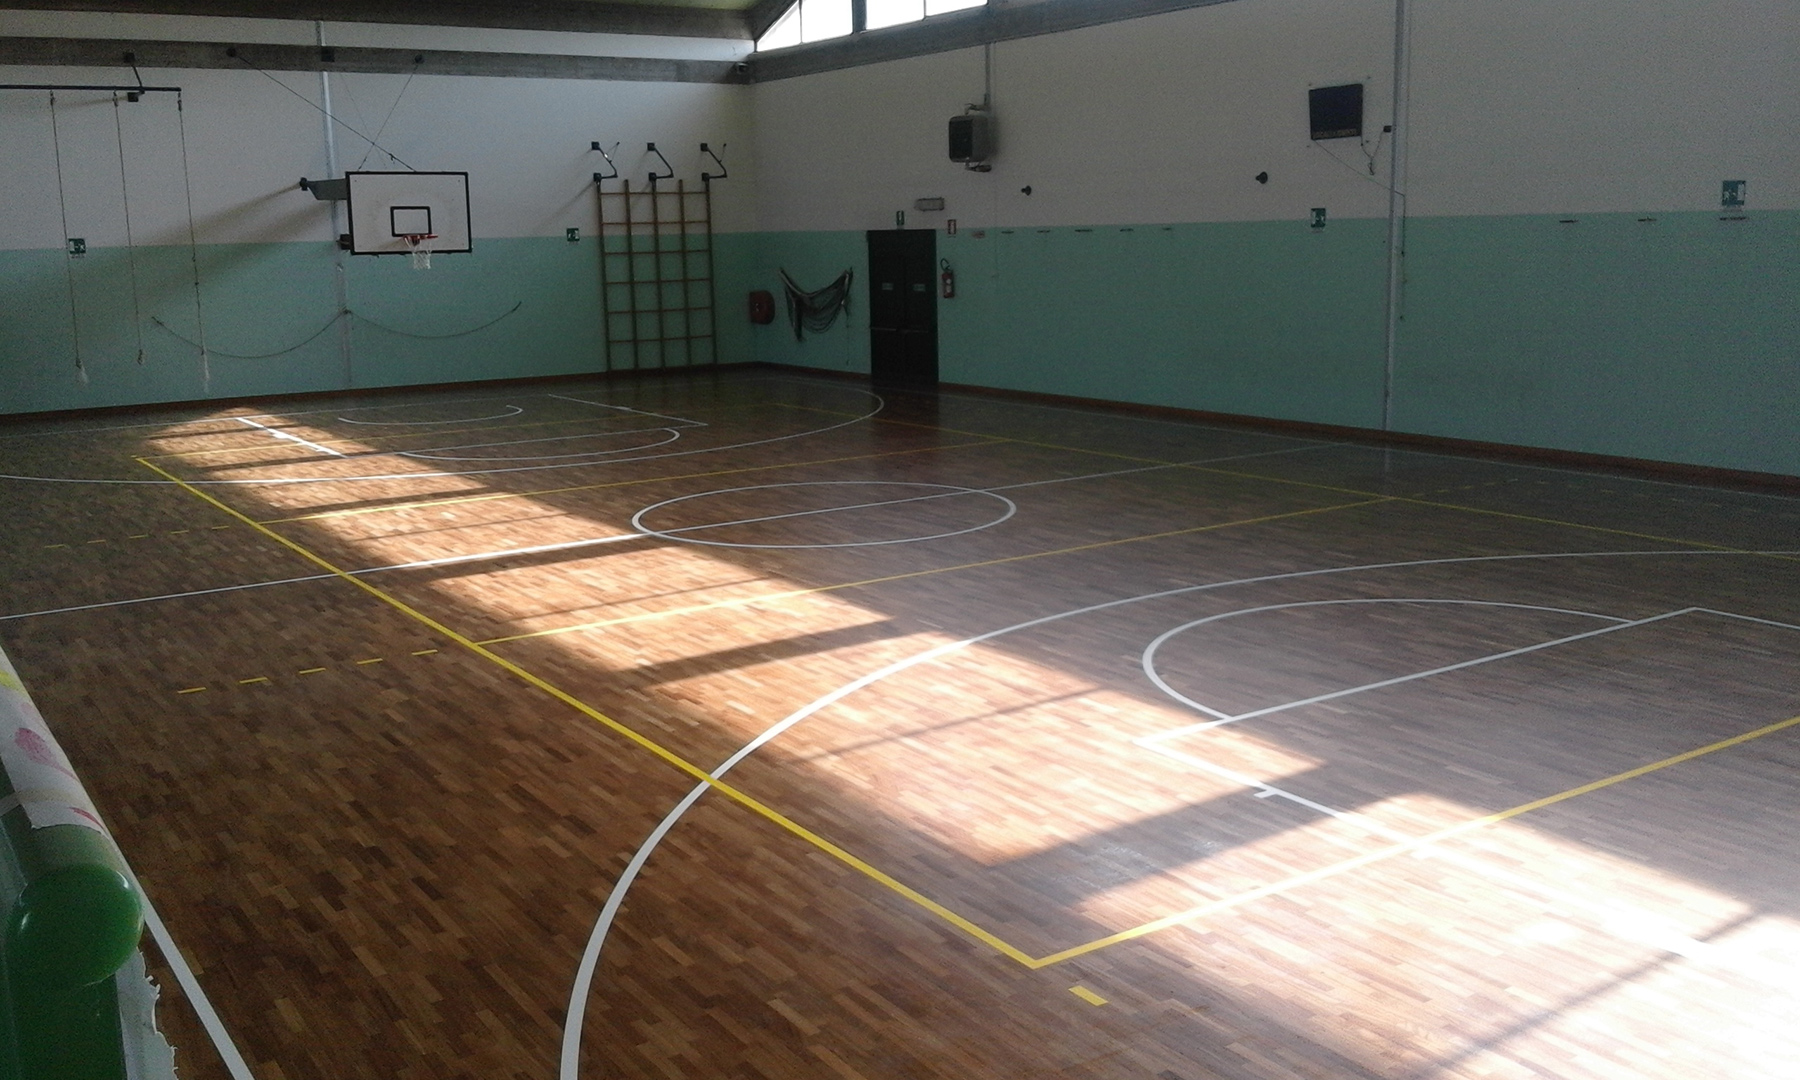 The floor looks new thanks to Dalla Riva Sportfloors